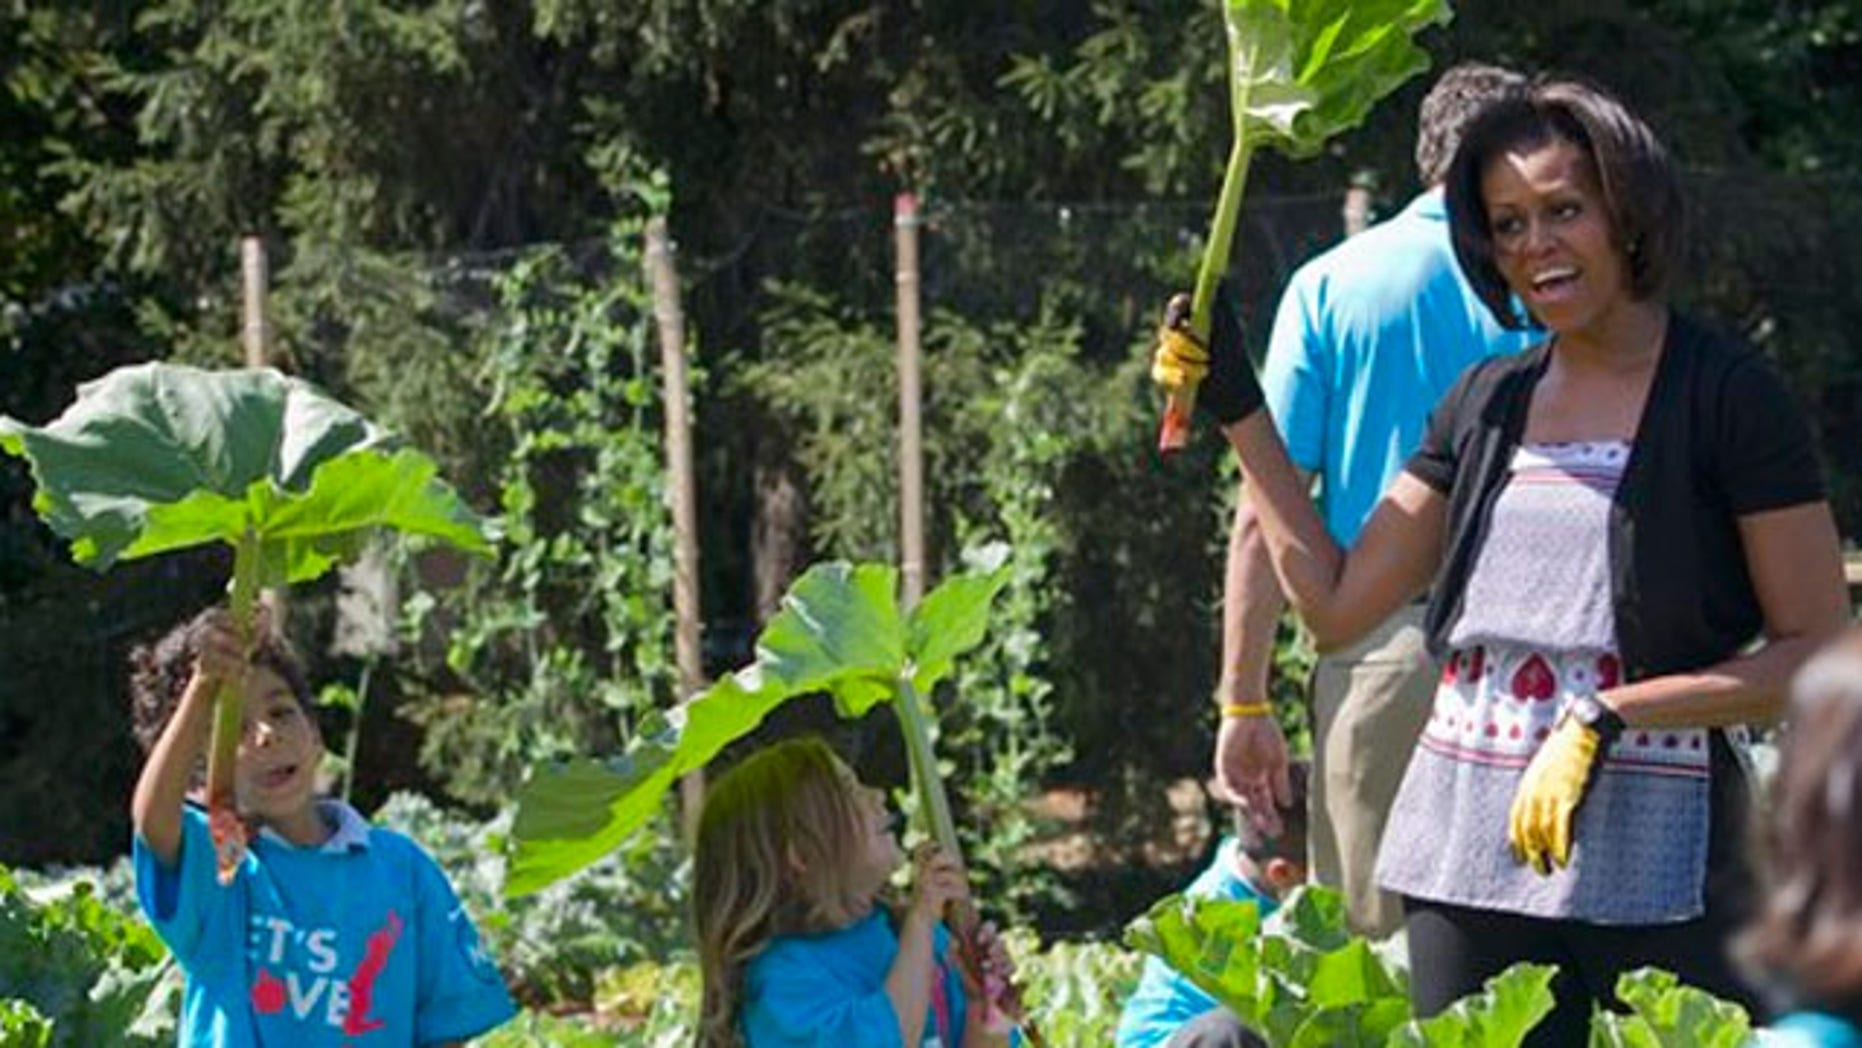 June 3, 2011: First lady Michelle Obama pretends that a rhubarb plant is an umbrella with a group of children during an event at the White House garden in Washington.